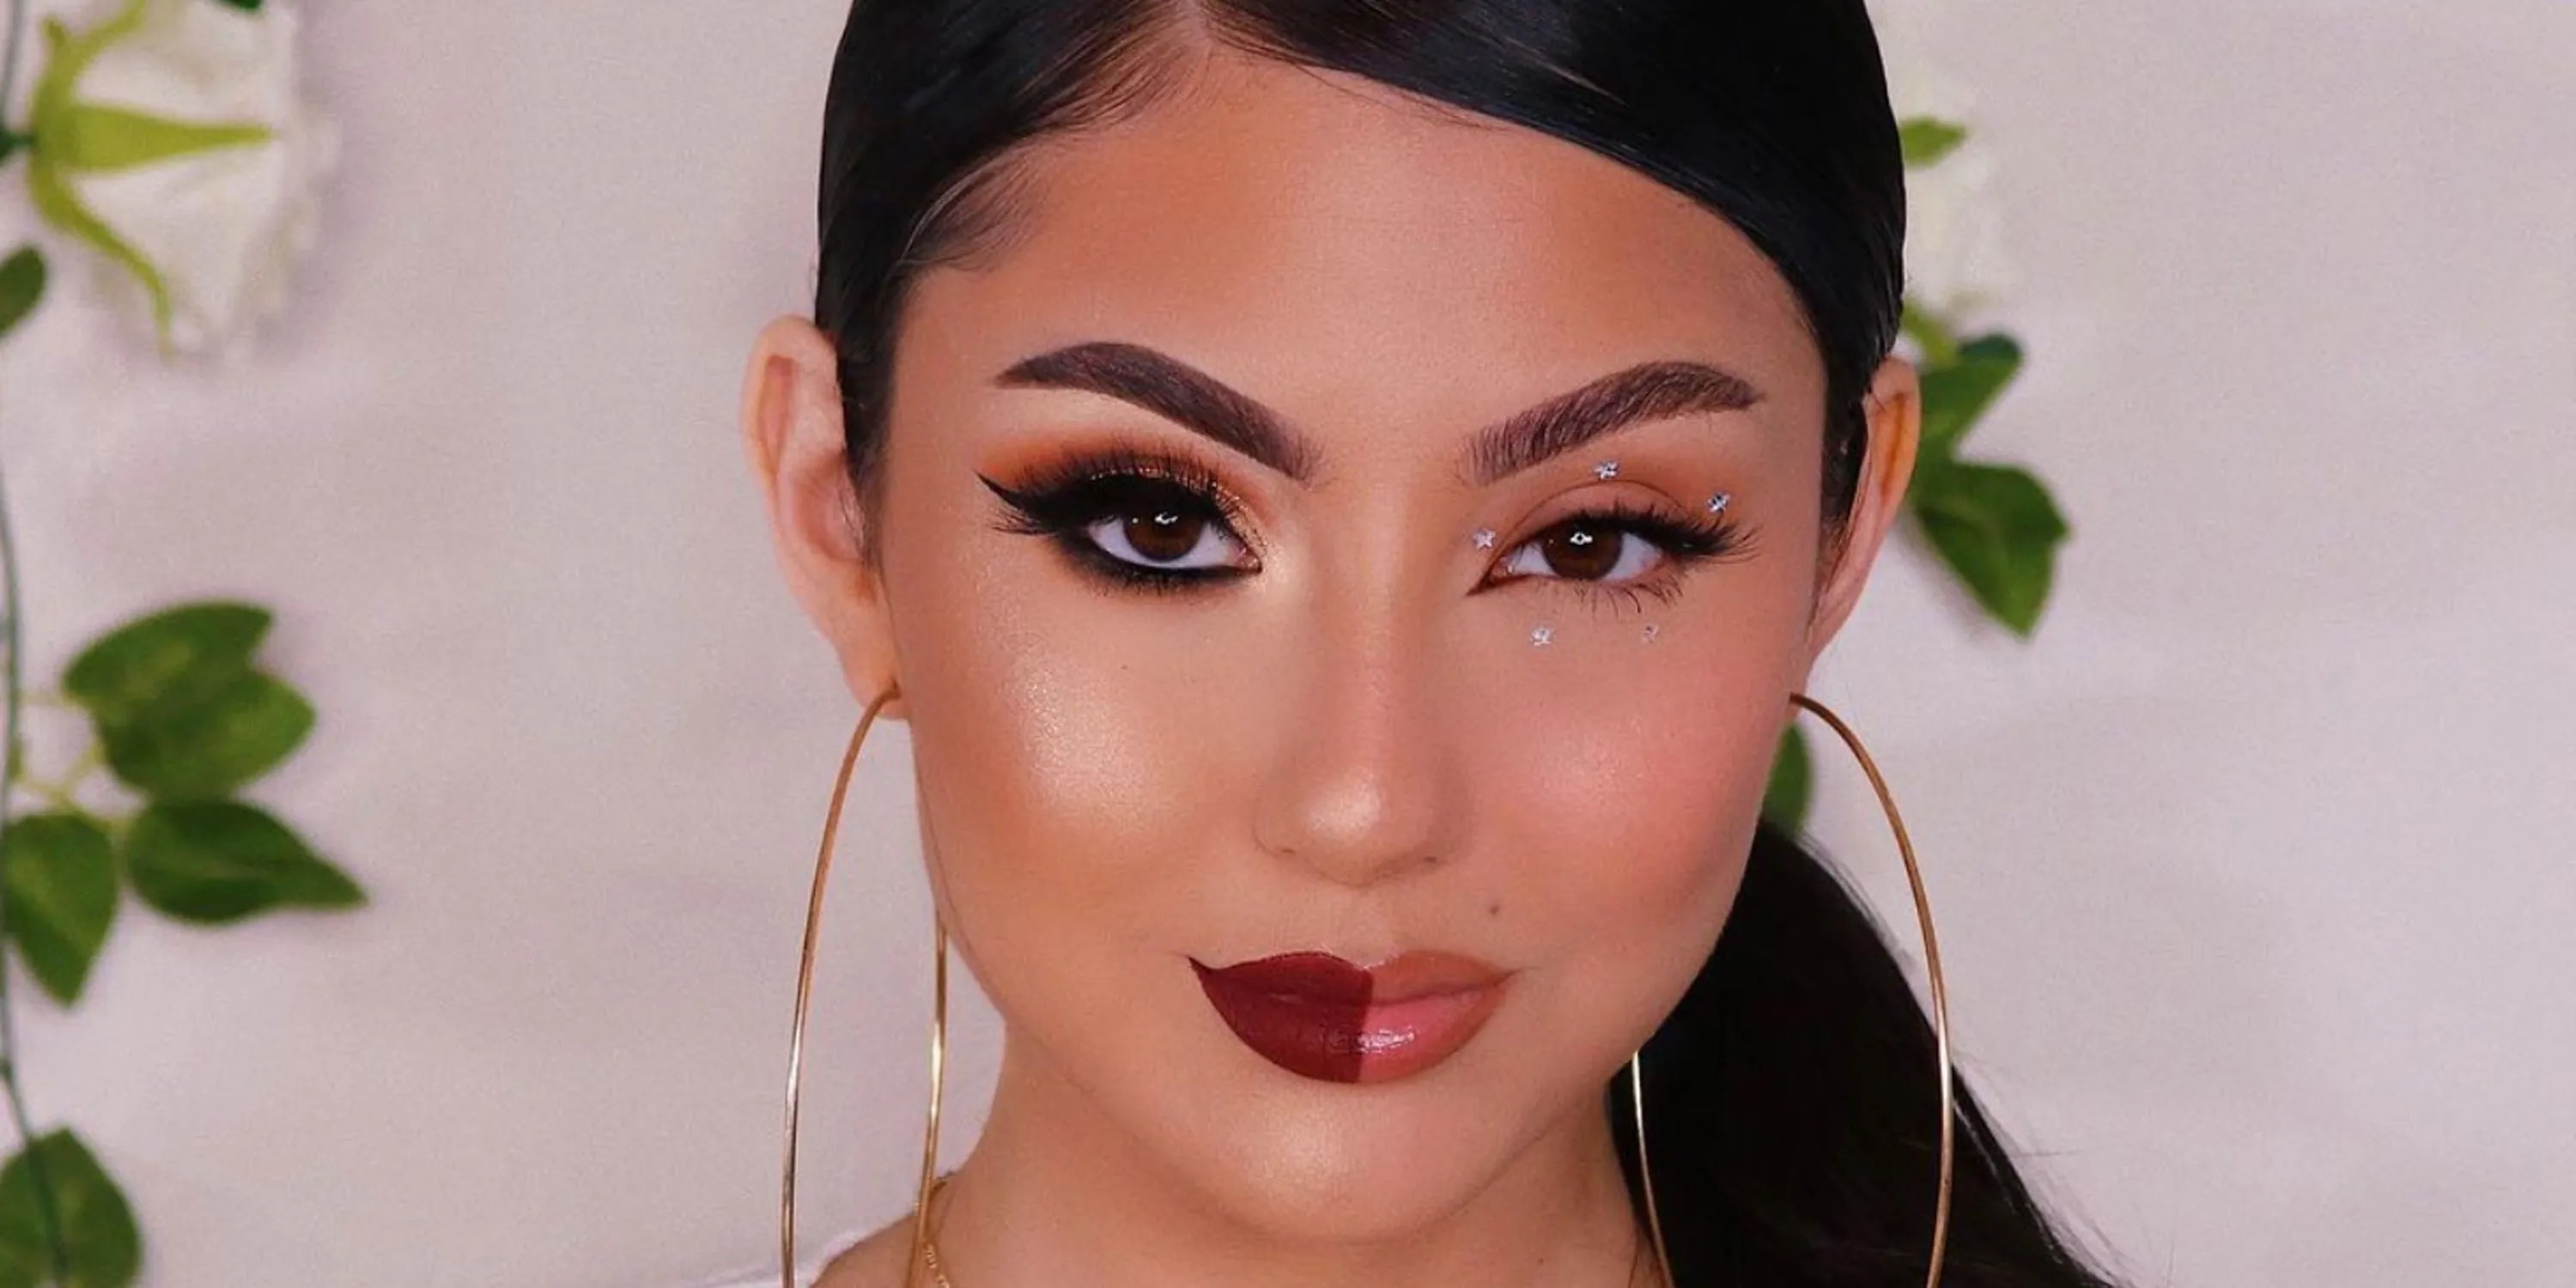 Makeup Artist Shows The Differences Between 2016 And 2020 Trends